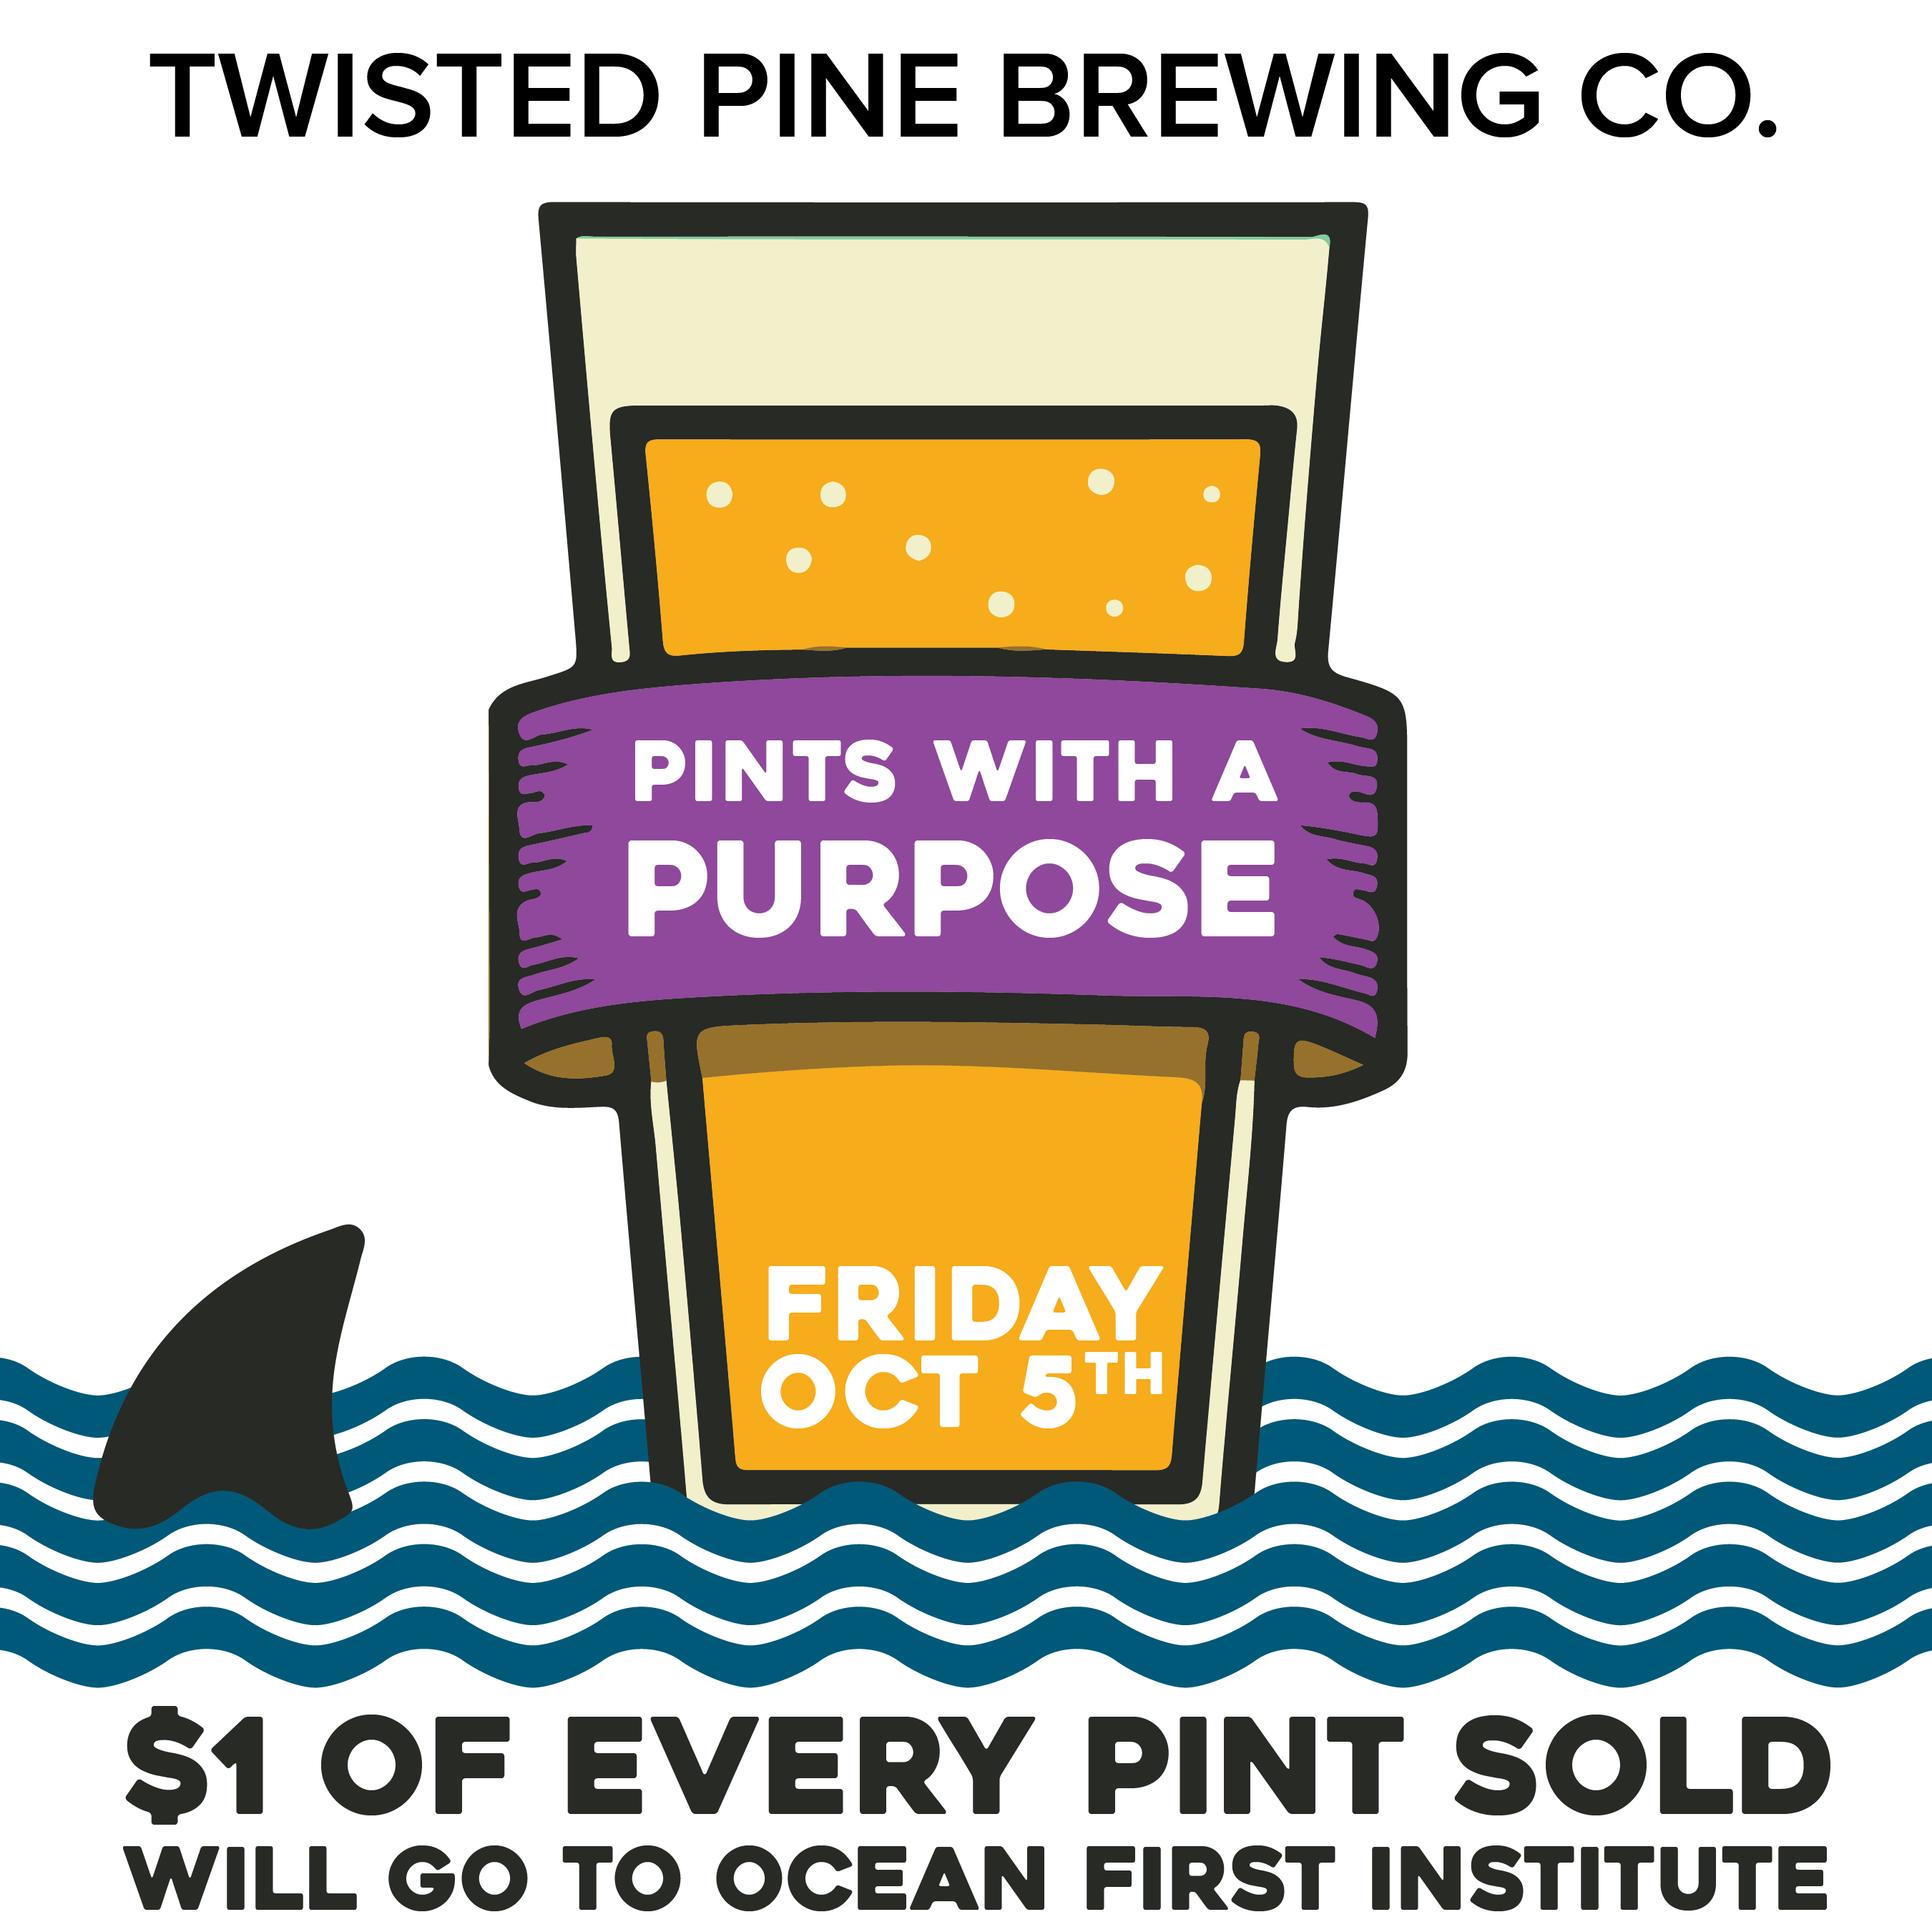 Pints With a Purpose at Twisted Pine